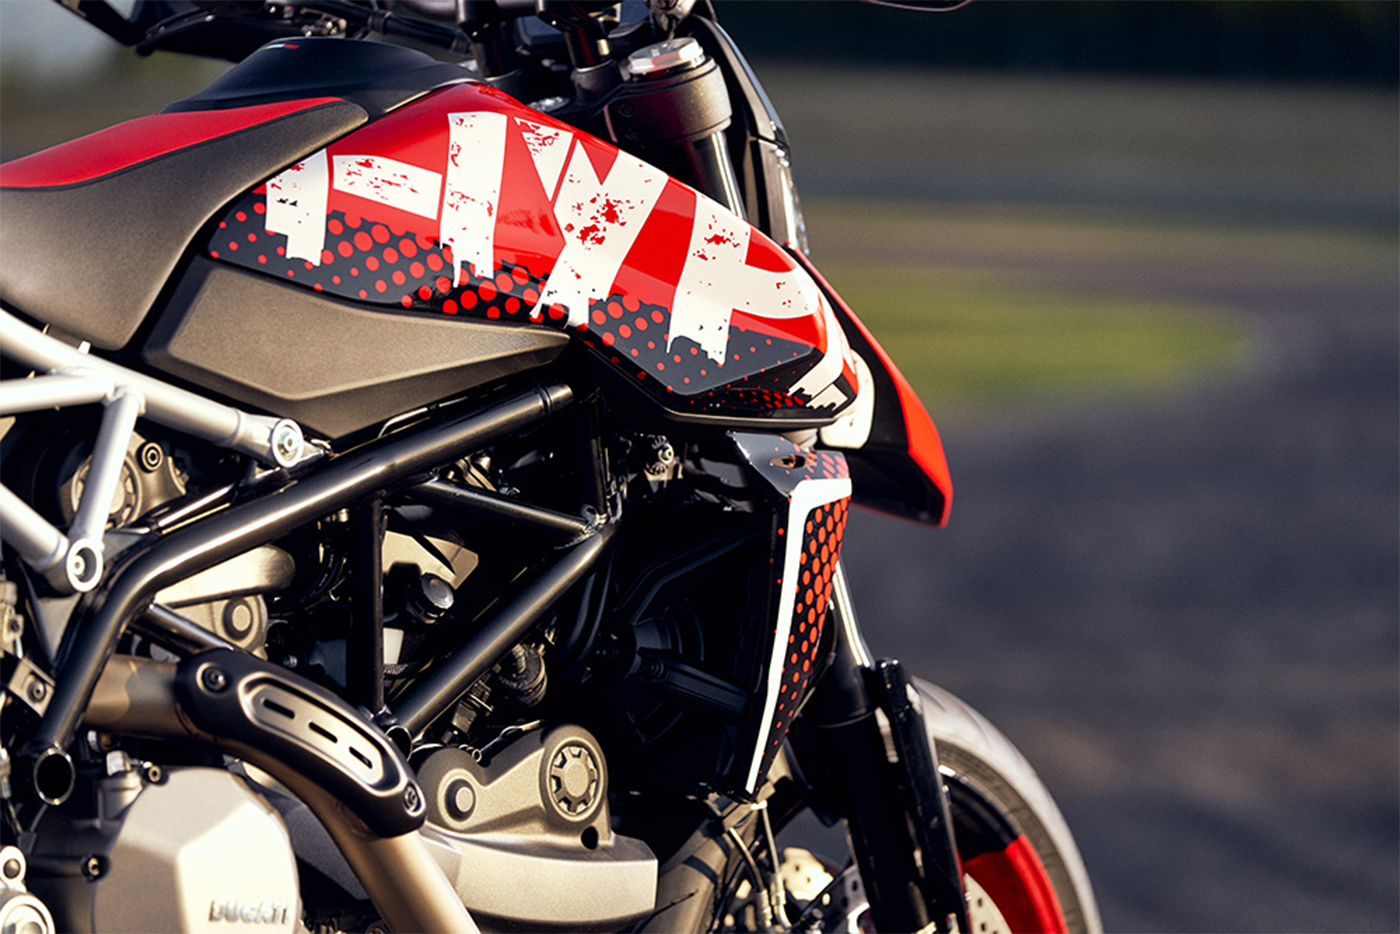 2020-ducati-hypermotard-950-rve-low-res-19.jpg